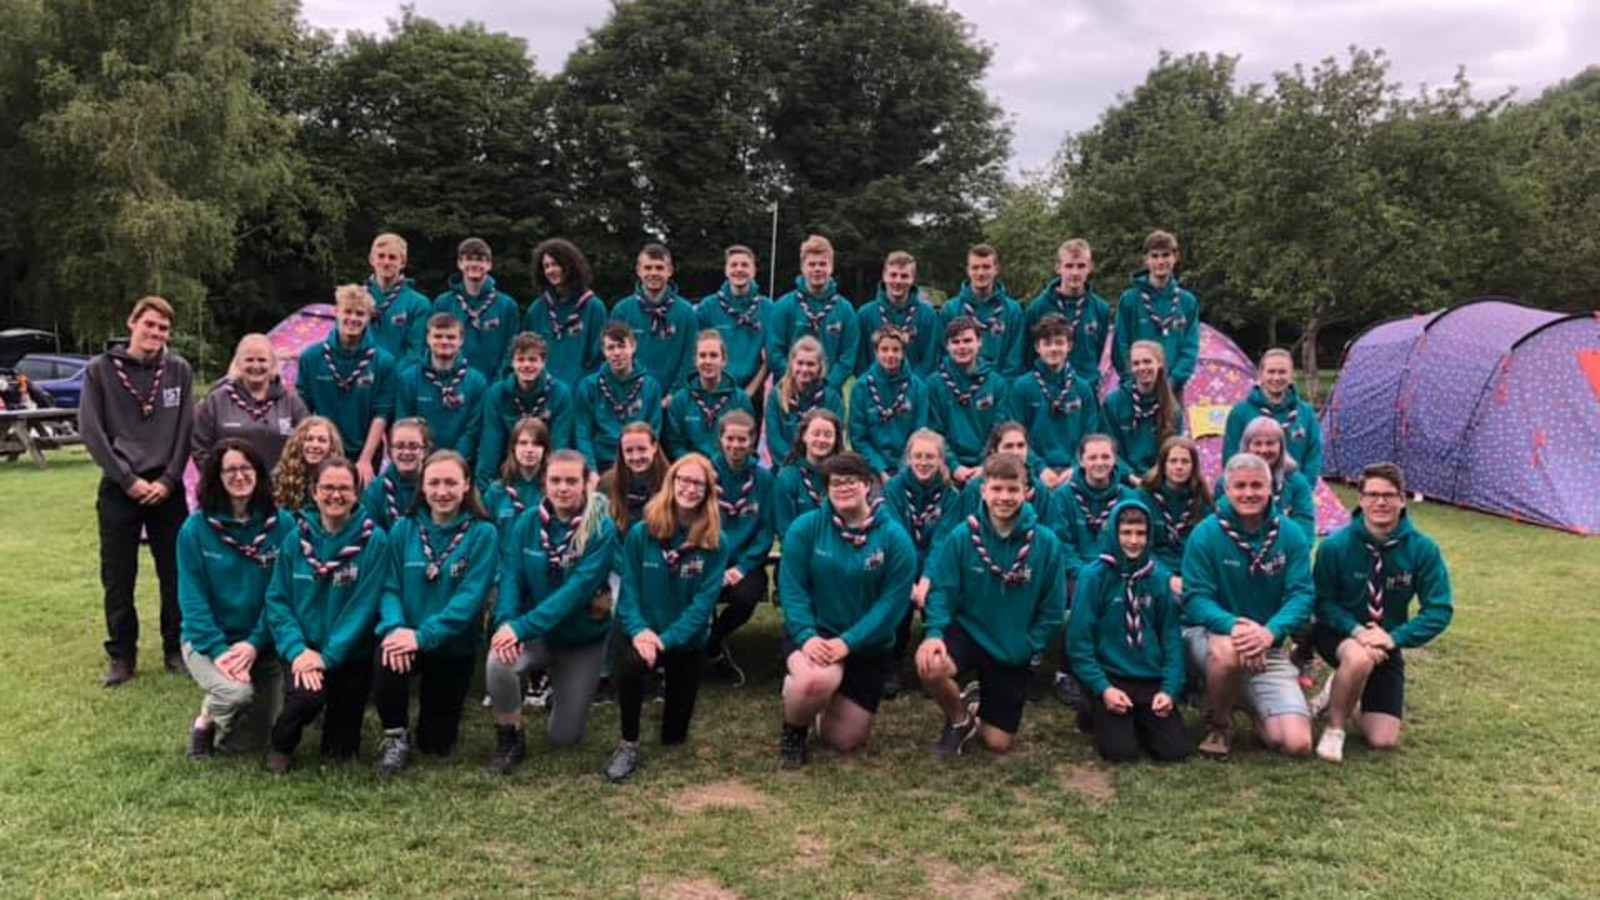 Humberside World Scout Jamboree Unit 31 - West Virginia 2019